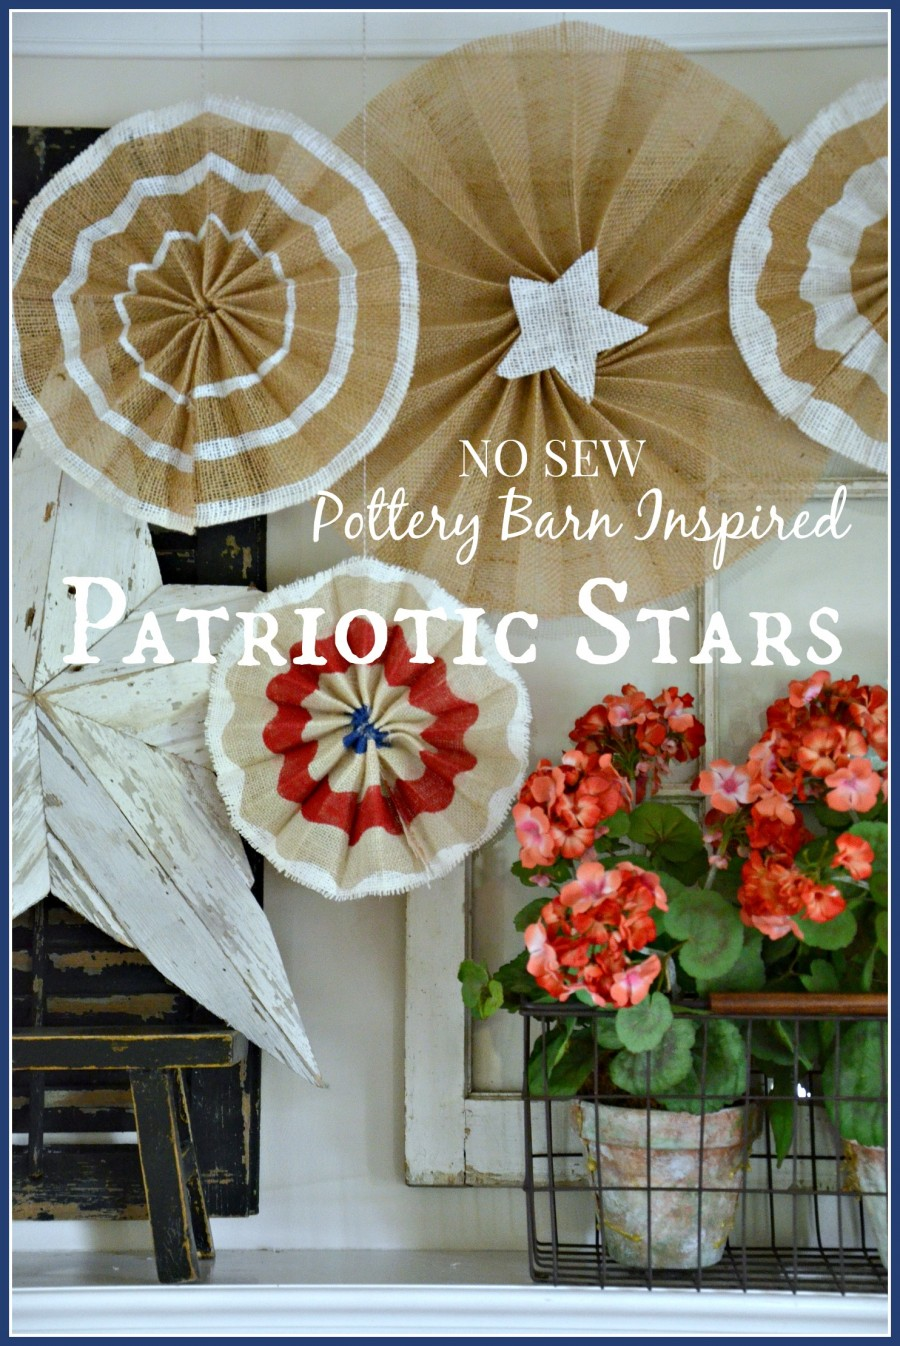 NO SEW POTTERY BARN INSPIRED PATRIOTIC STARS-Burlap and painted stars-stonegableblog.com